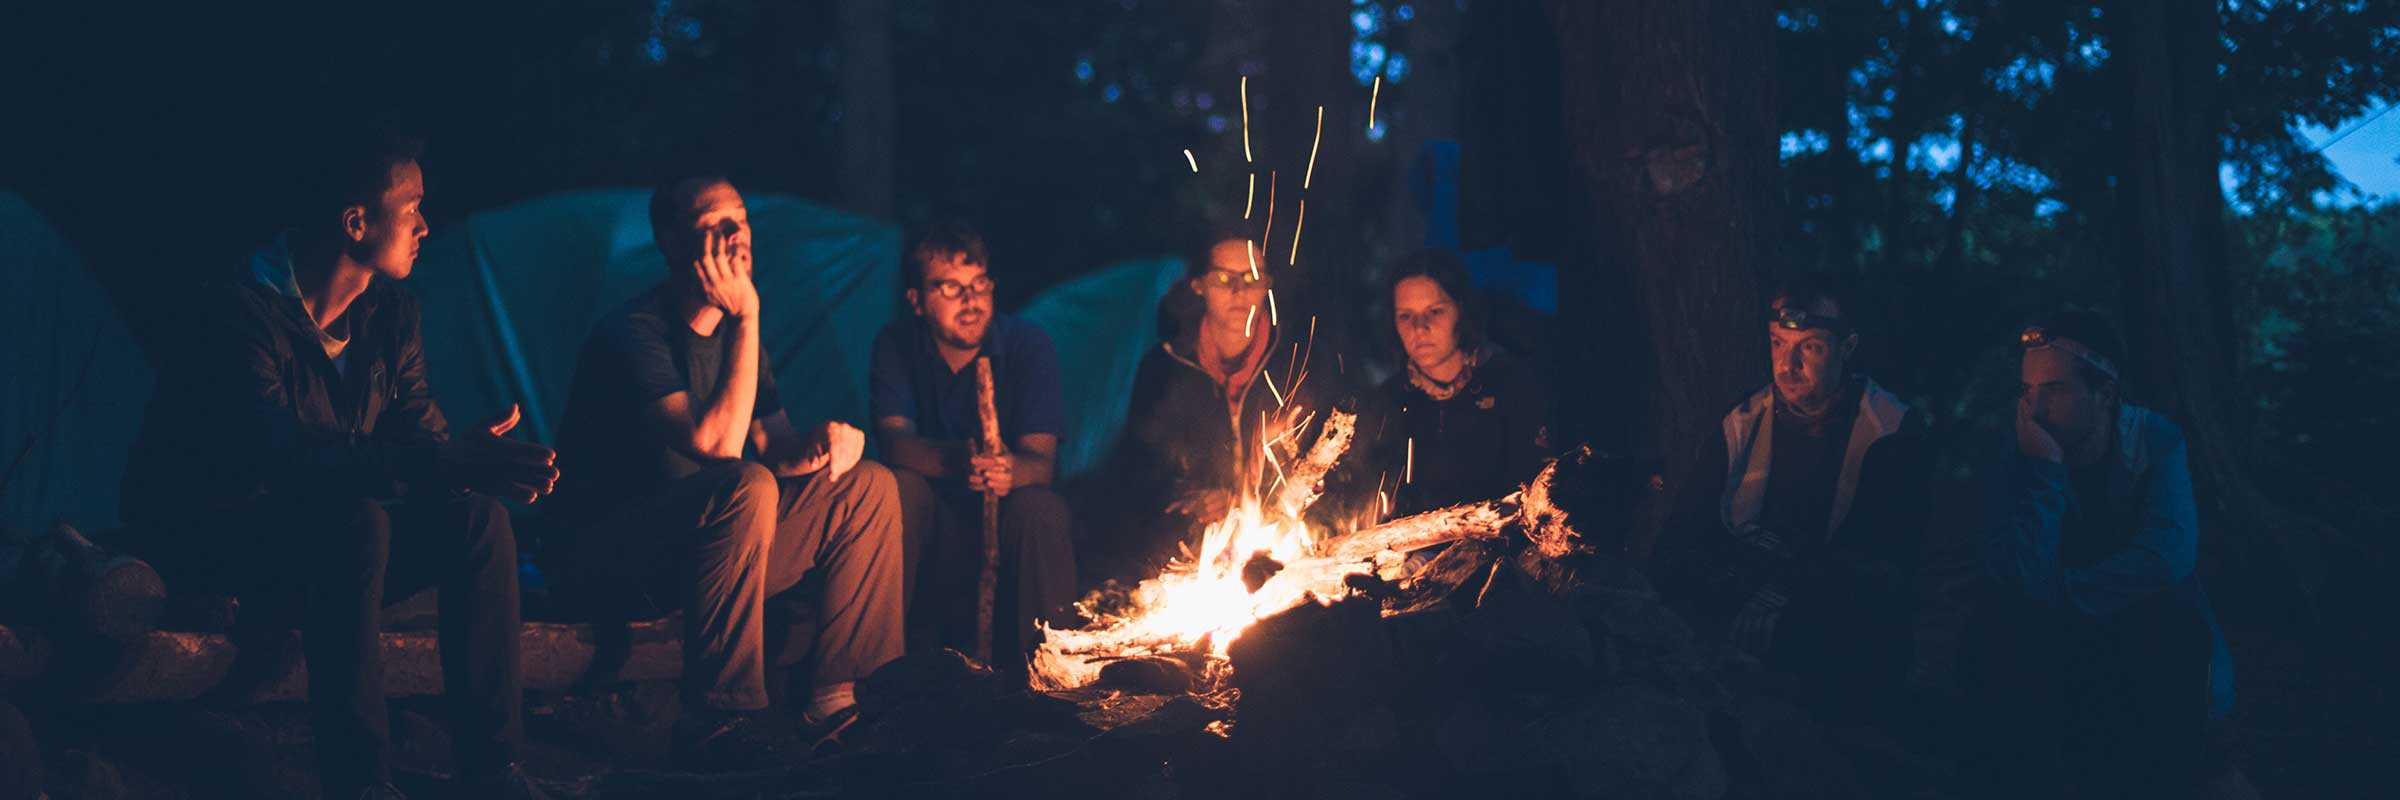 7 Easy Fire Starting Hacks For Your Camping Adventures | Altitude Blog